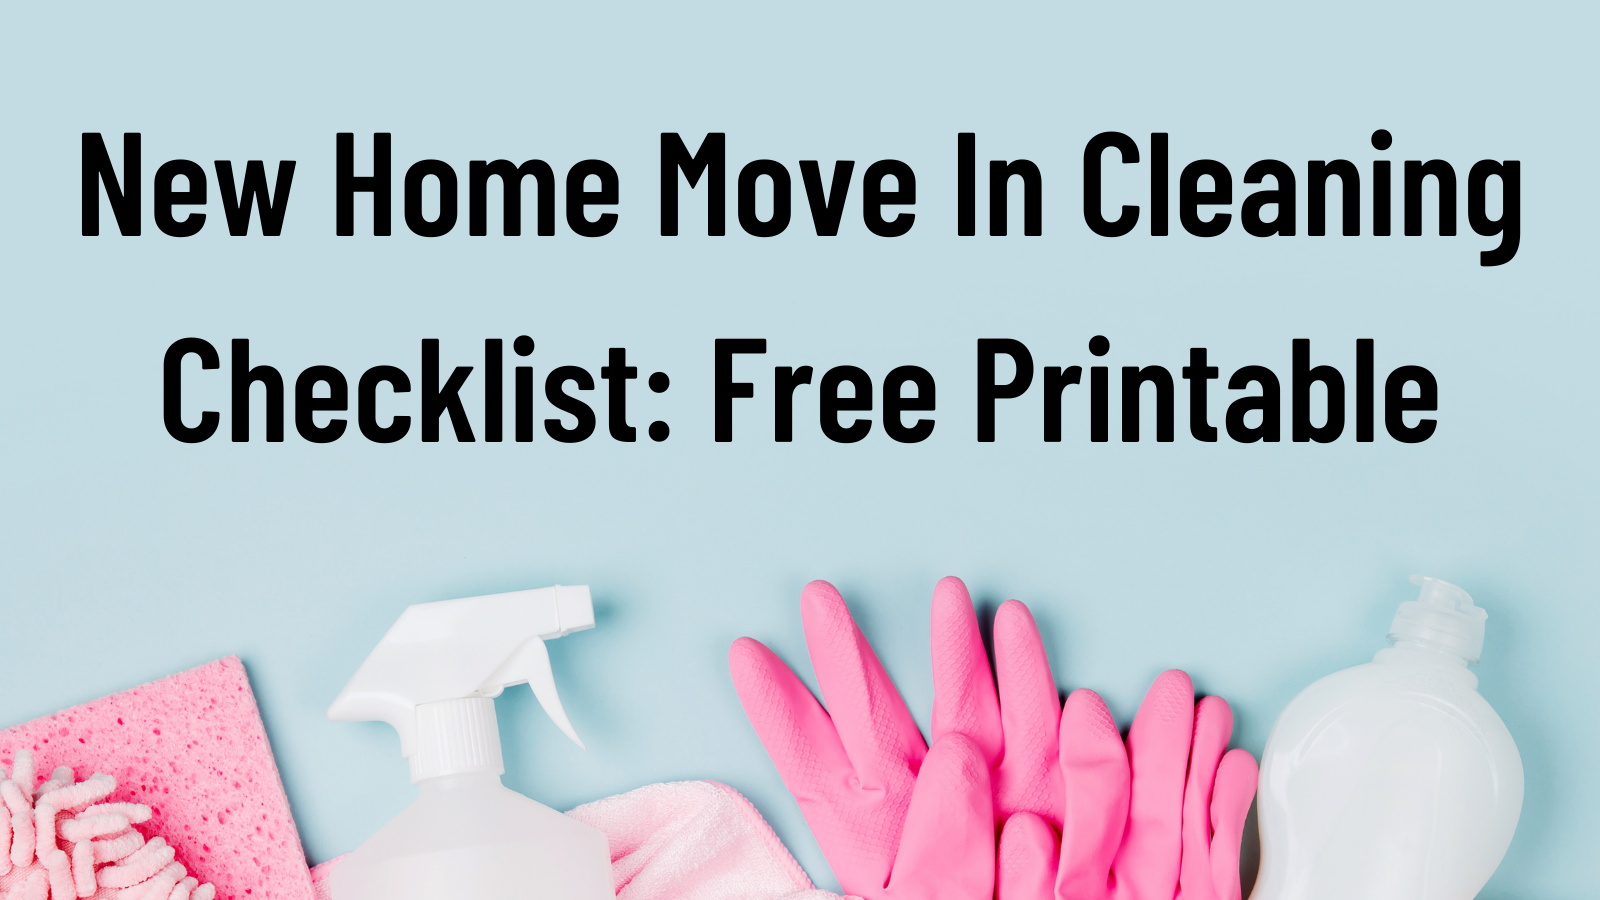 New Home Move In Cleaning Checklist: Free Printable